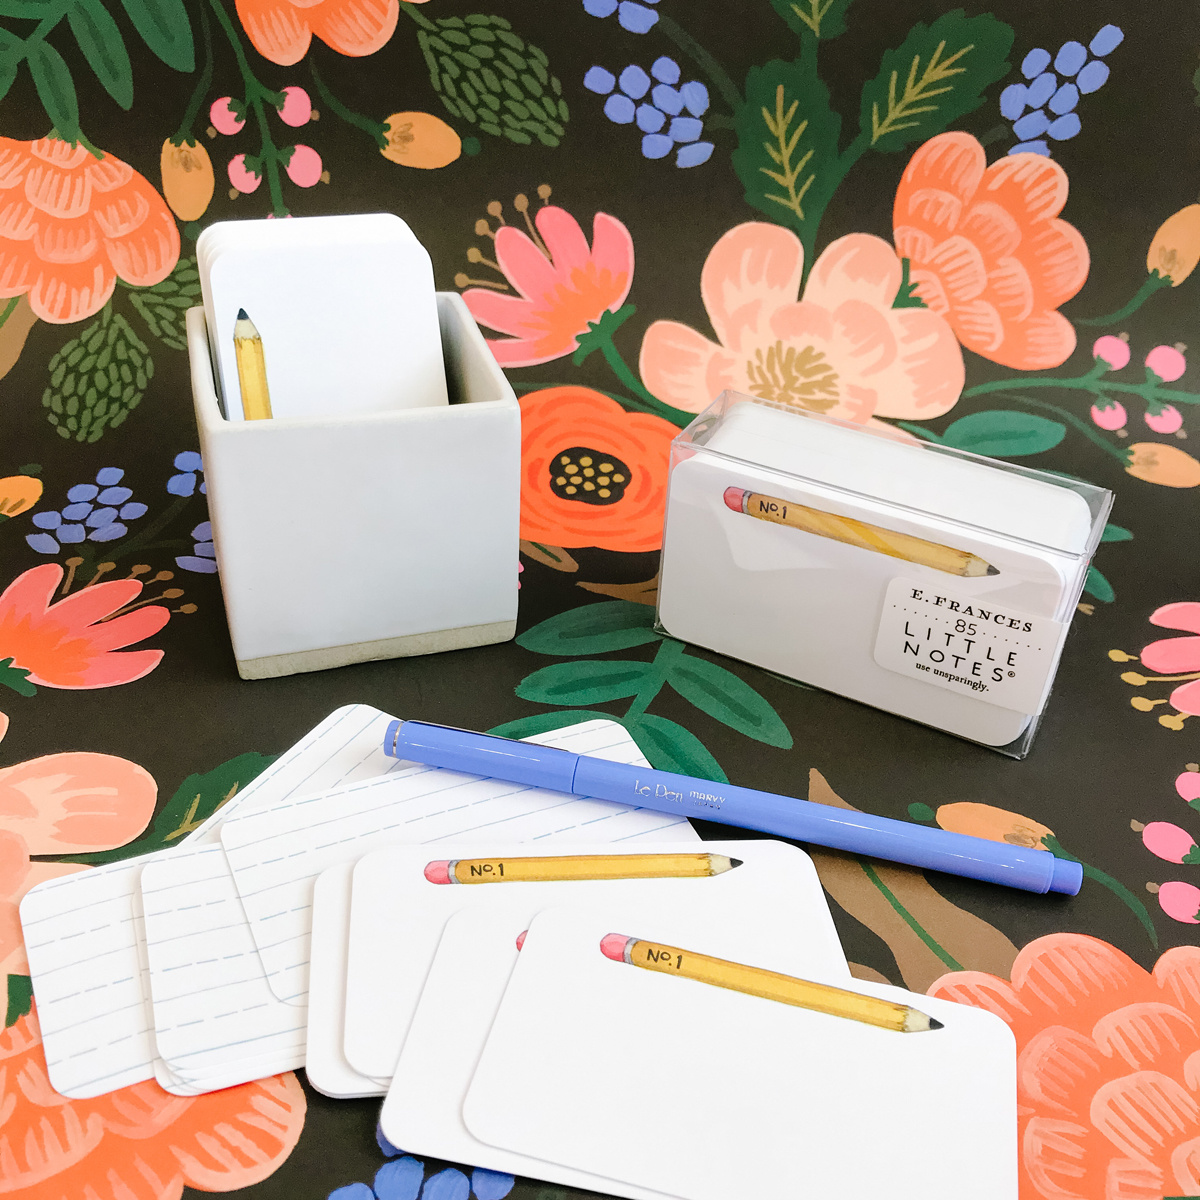 Gus and Ruby Letterpress - GR GR GB - Teacher Notes Gift Box